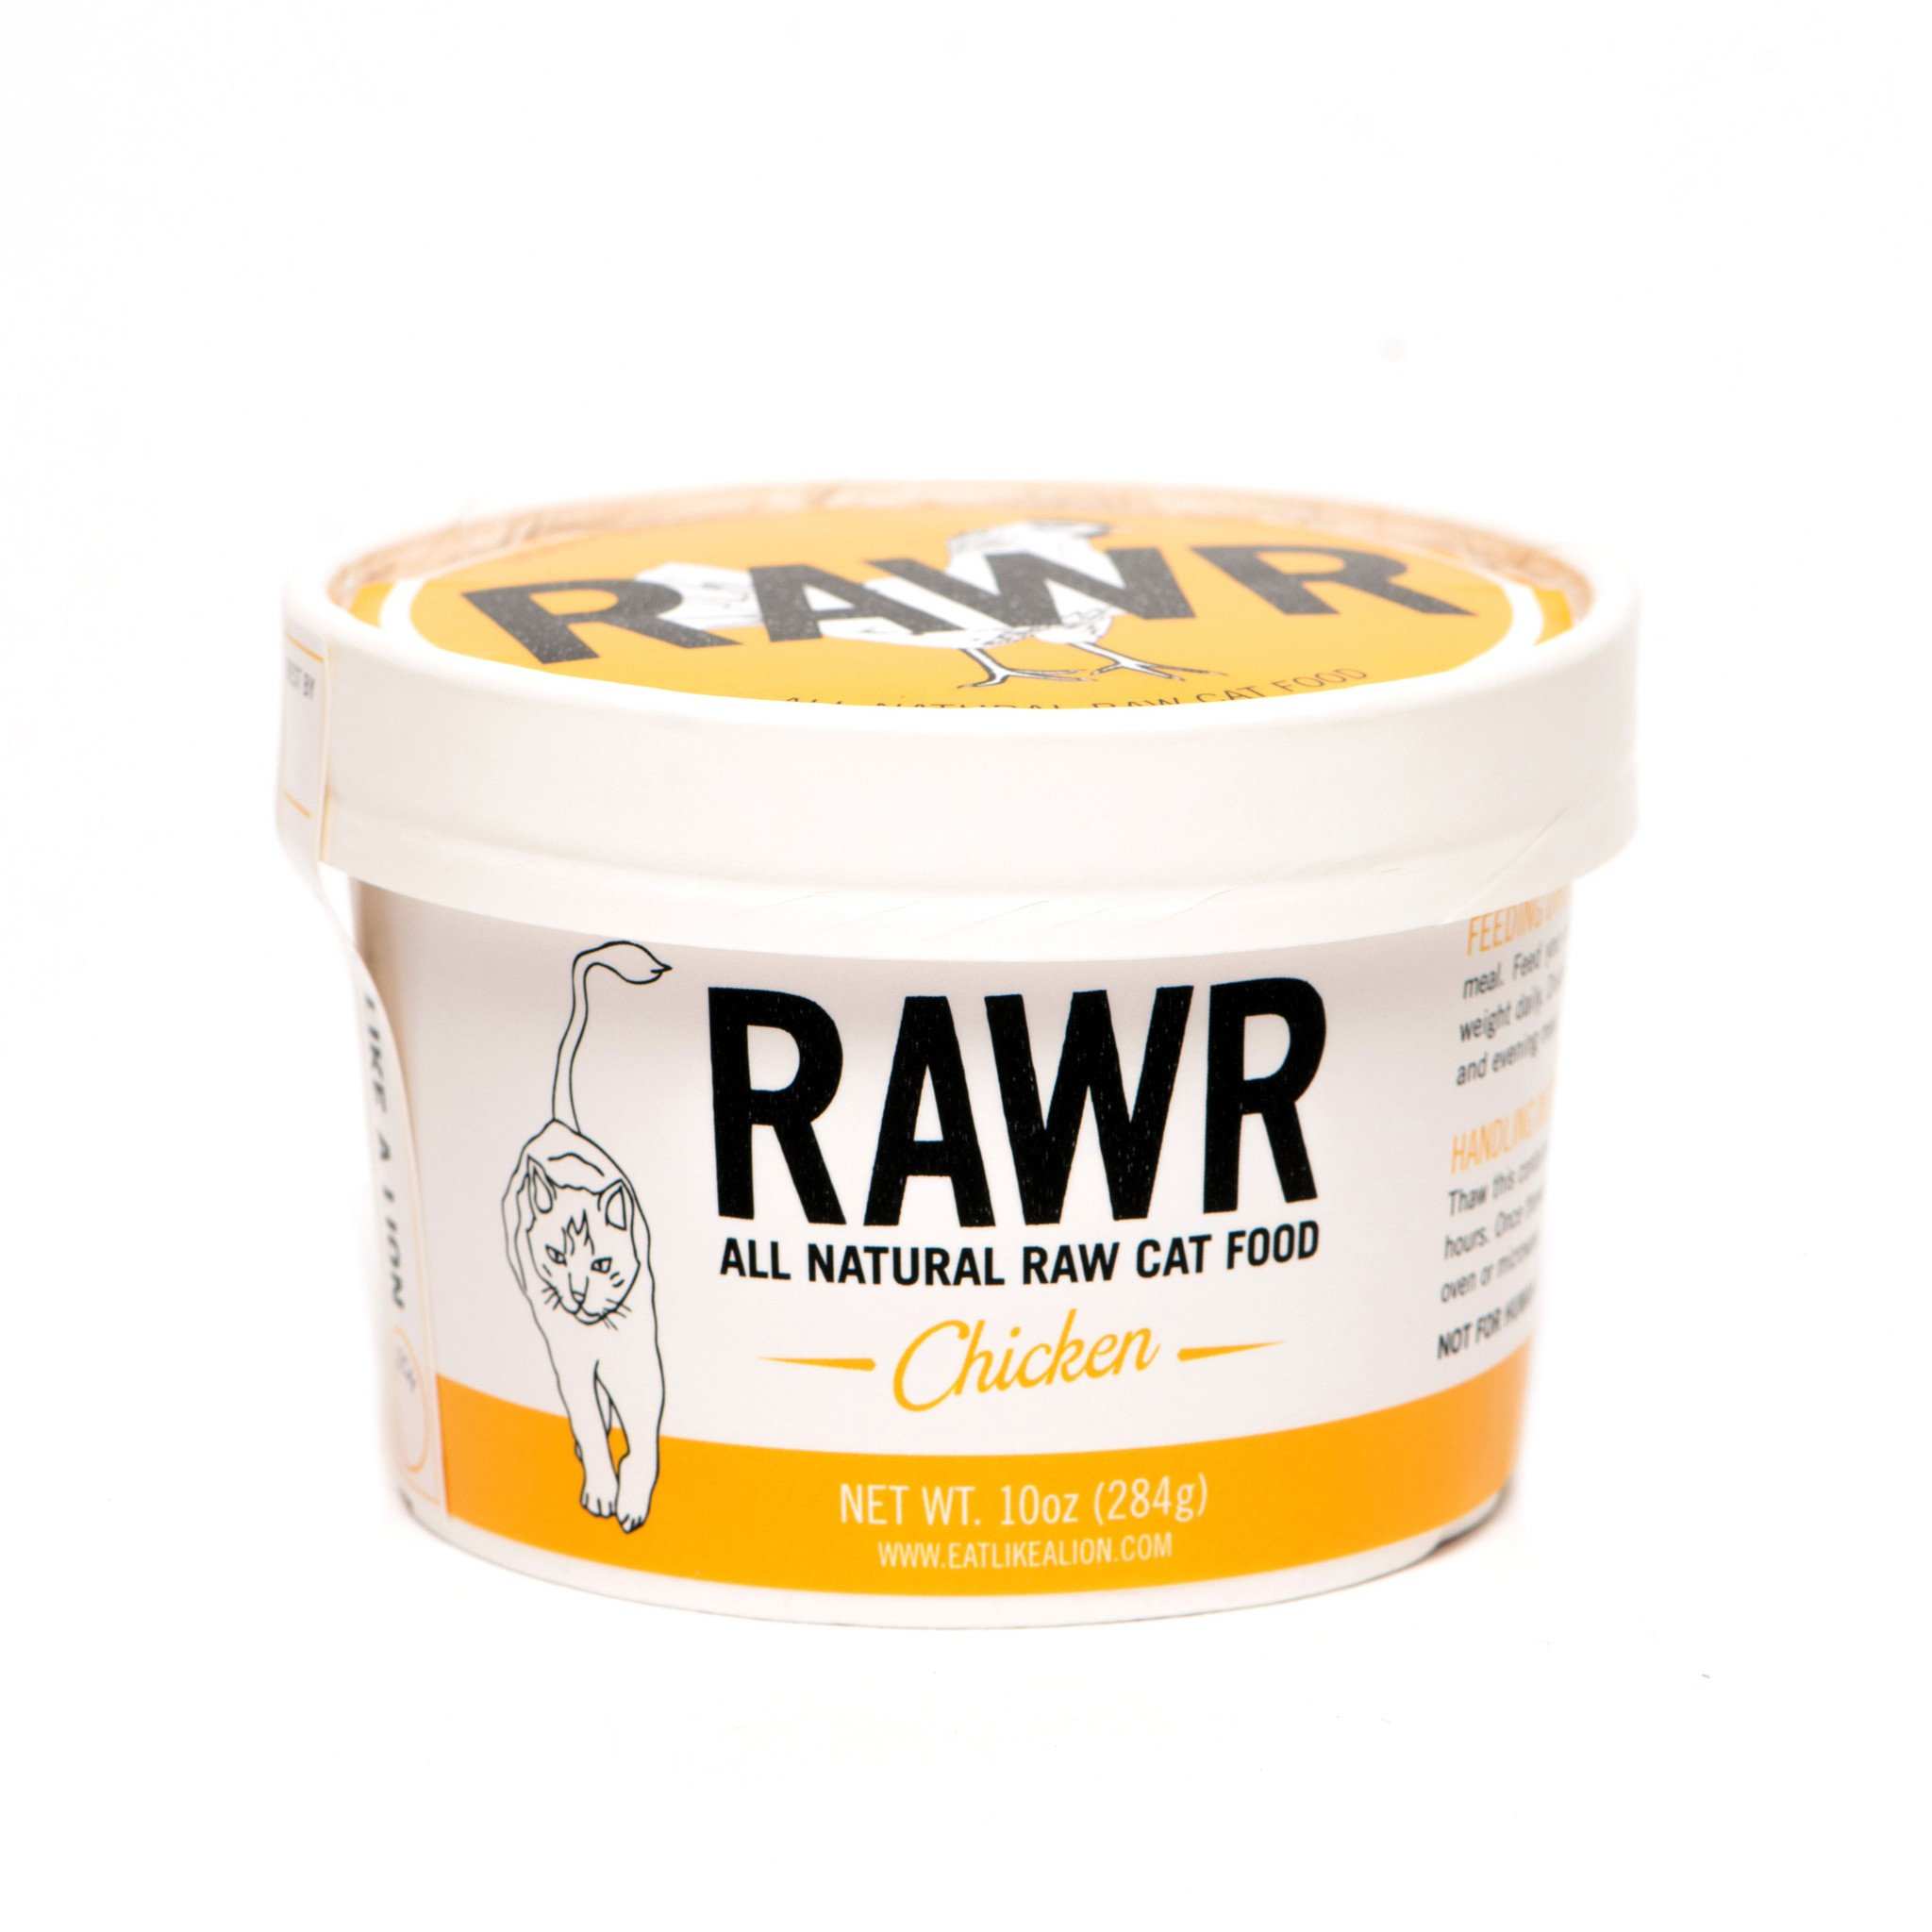 RAWR All Natural Chicken Raw Frozen Cat Food, 8-oz